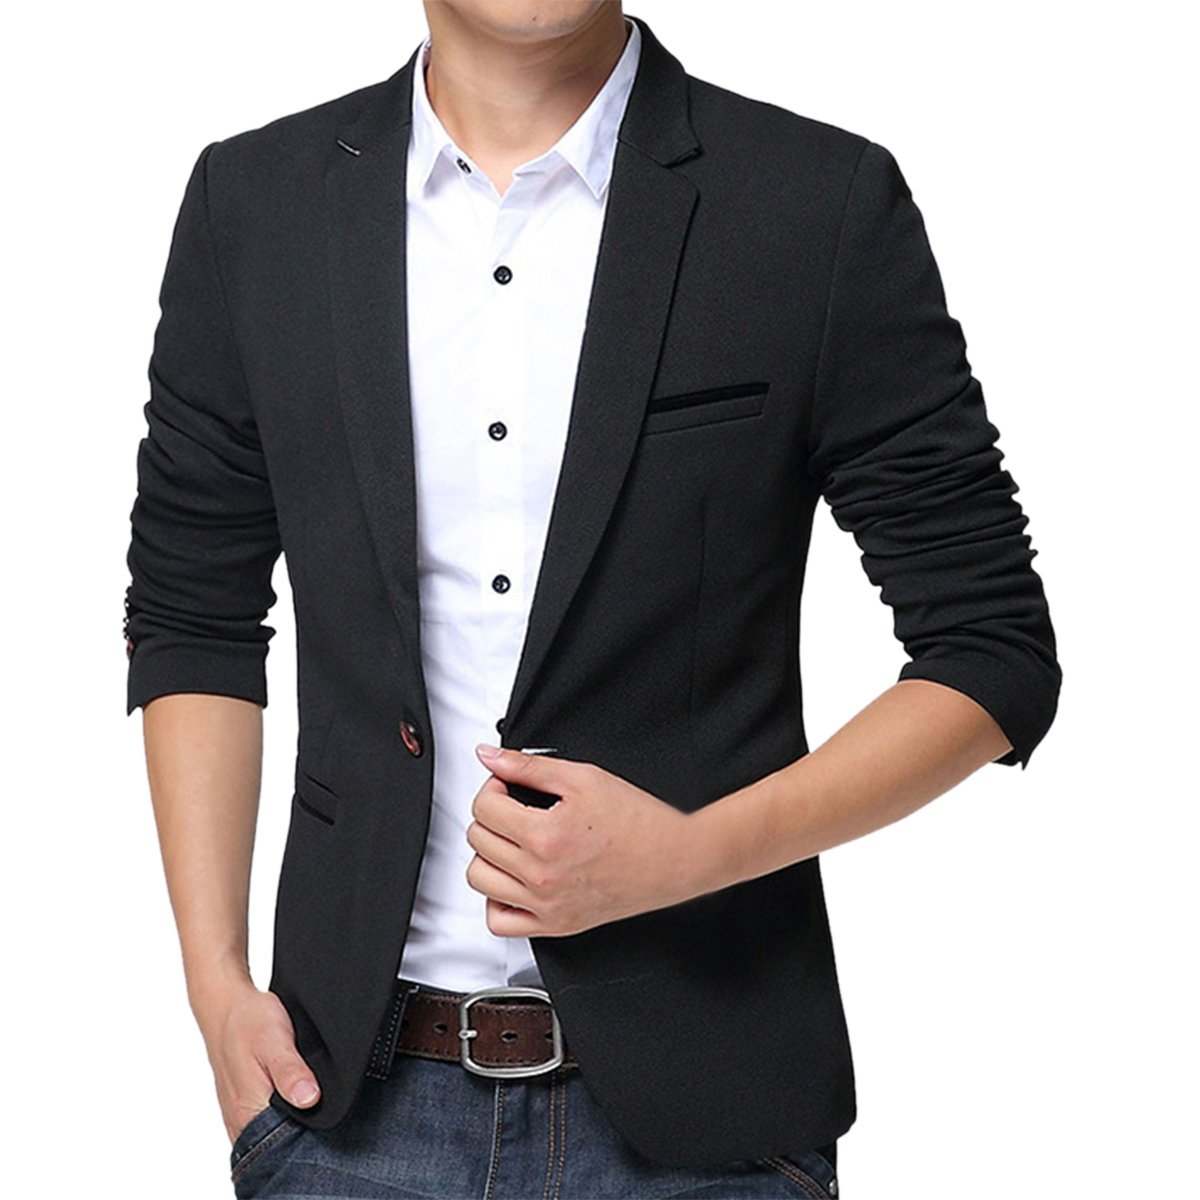 1aae4f98e80 Pishon Men s Slim Fit Suits Casual One Button Flap Pockets Solid Blazer  Jacket at Amazon Men s Clothing store